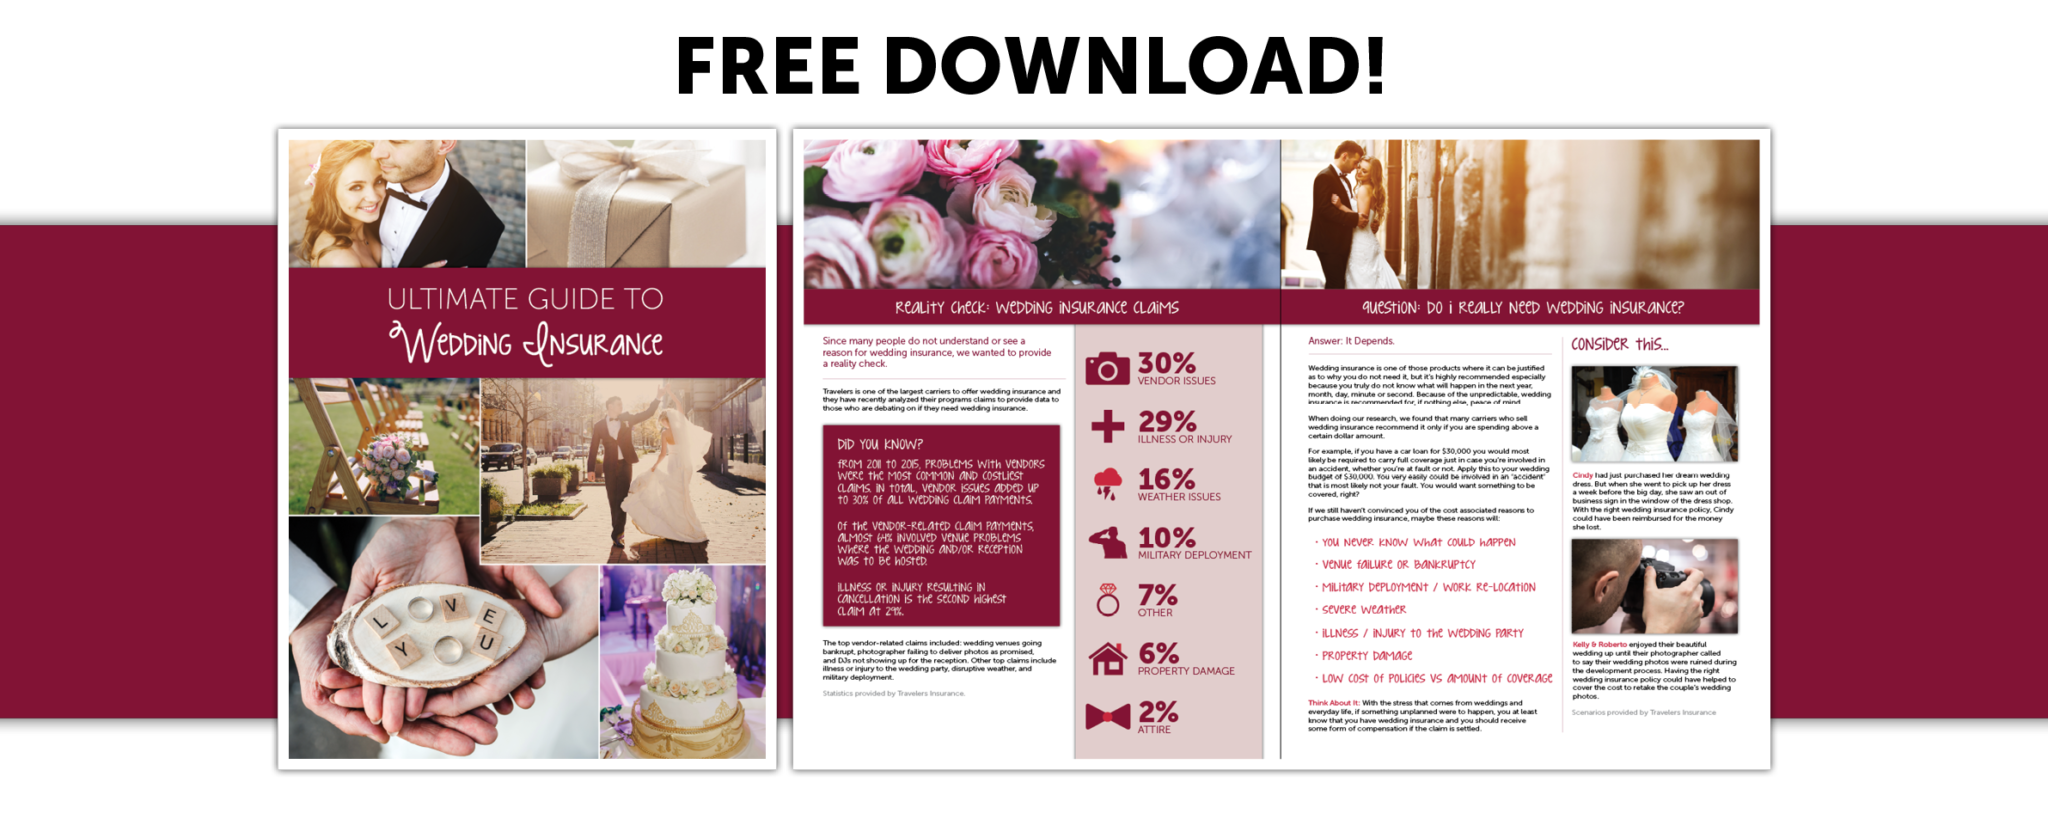 Weddings And Everyday Life If Something Unplanned Were To Happen You At Least Know That Have Wedding Insurance Should Receive